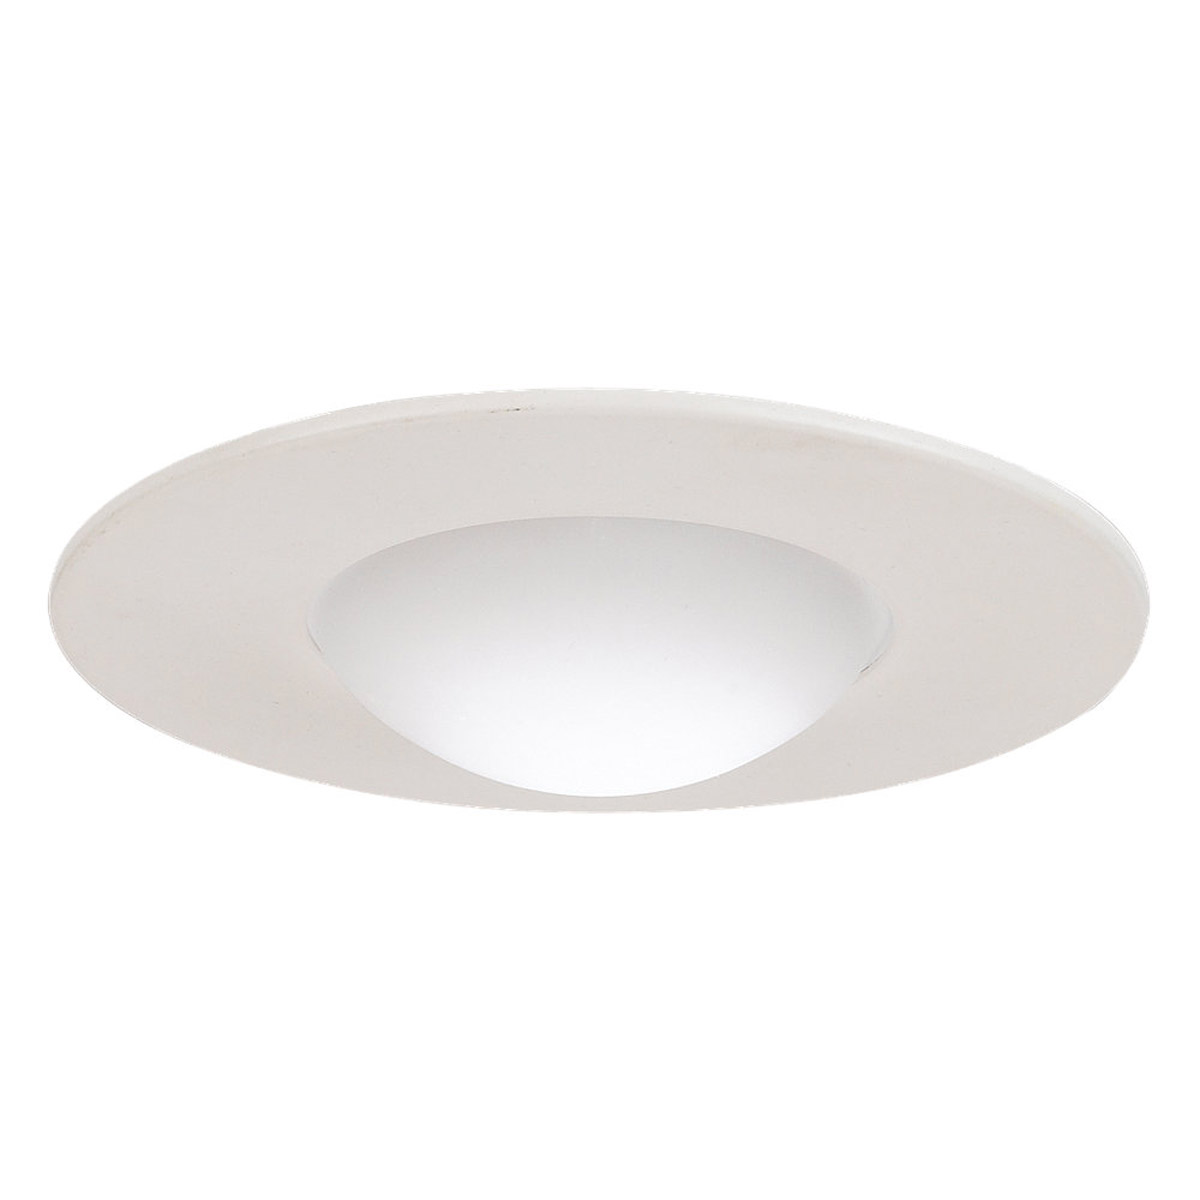 Sea Gull Lighting Signature Recessed Trim Only in White 1242AT-15